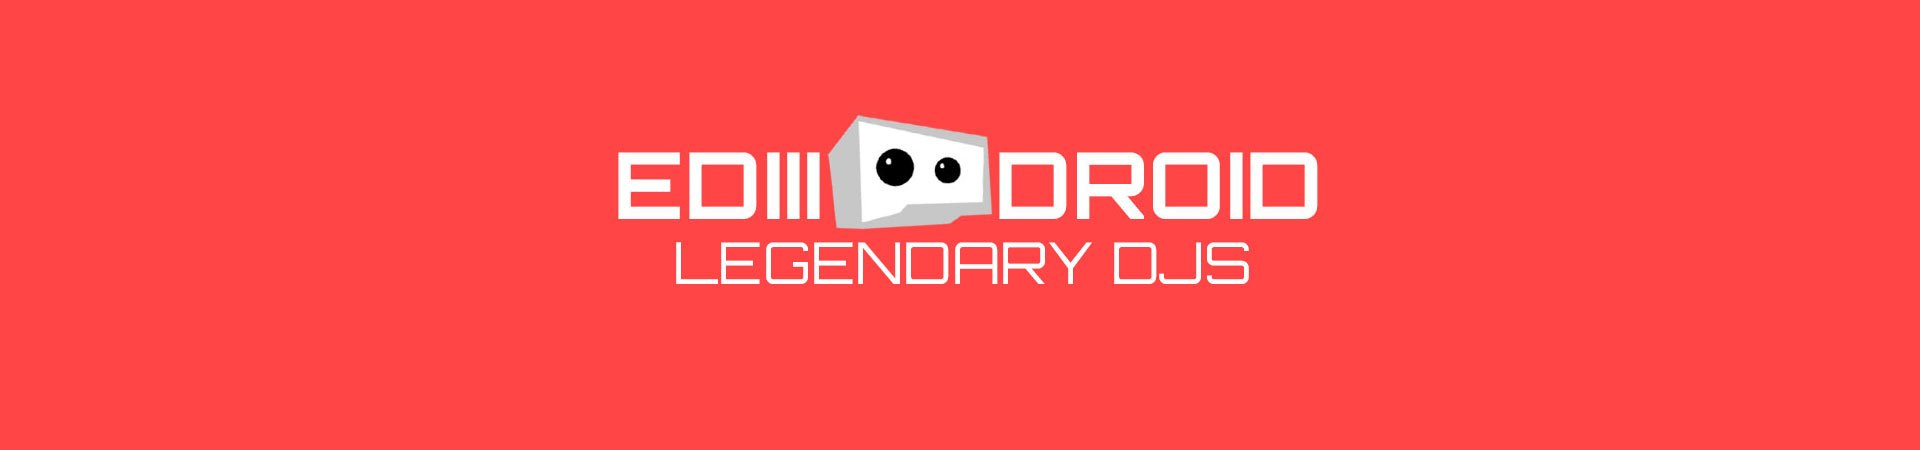 EDMDroid Top 13 Legendary DJs in Malaysia